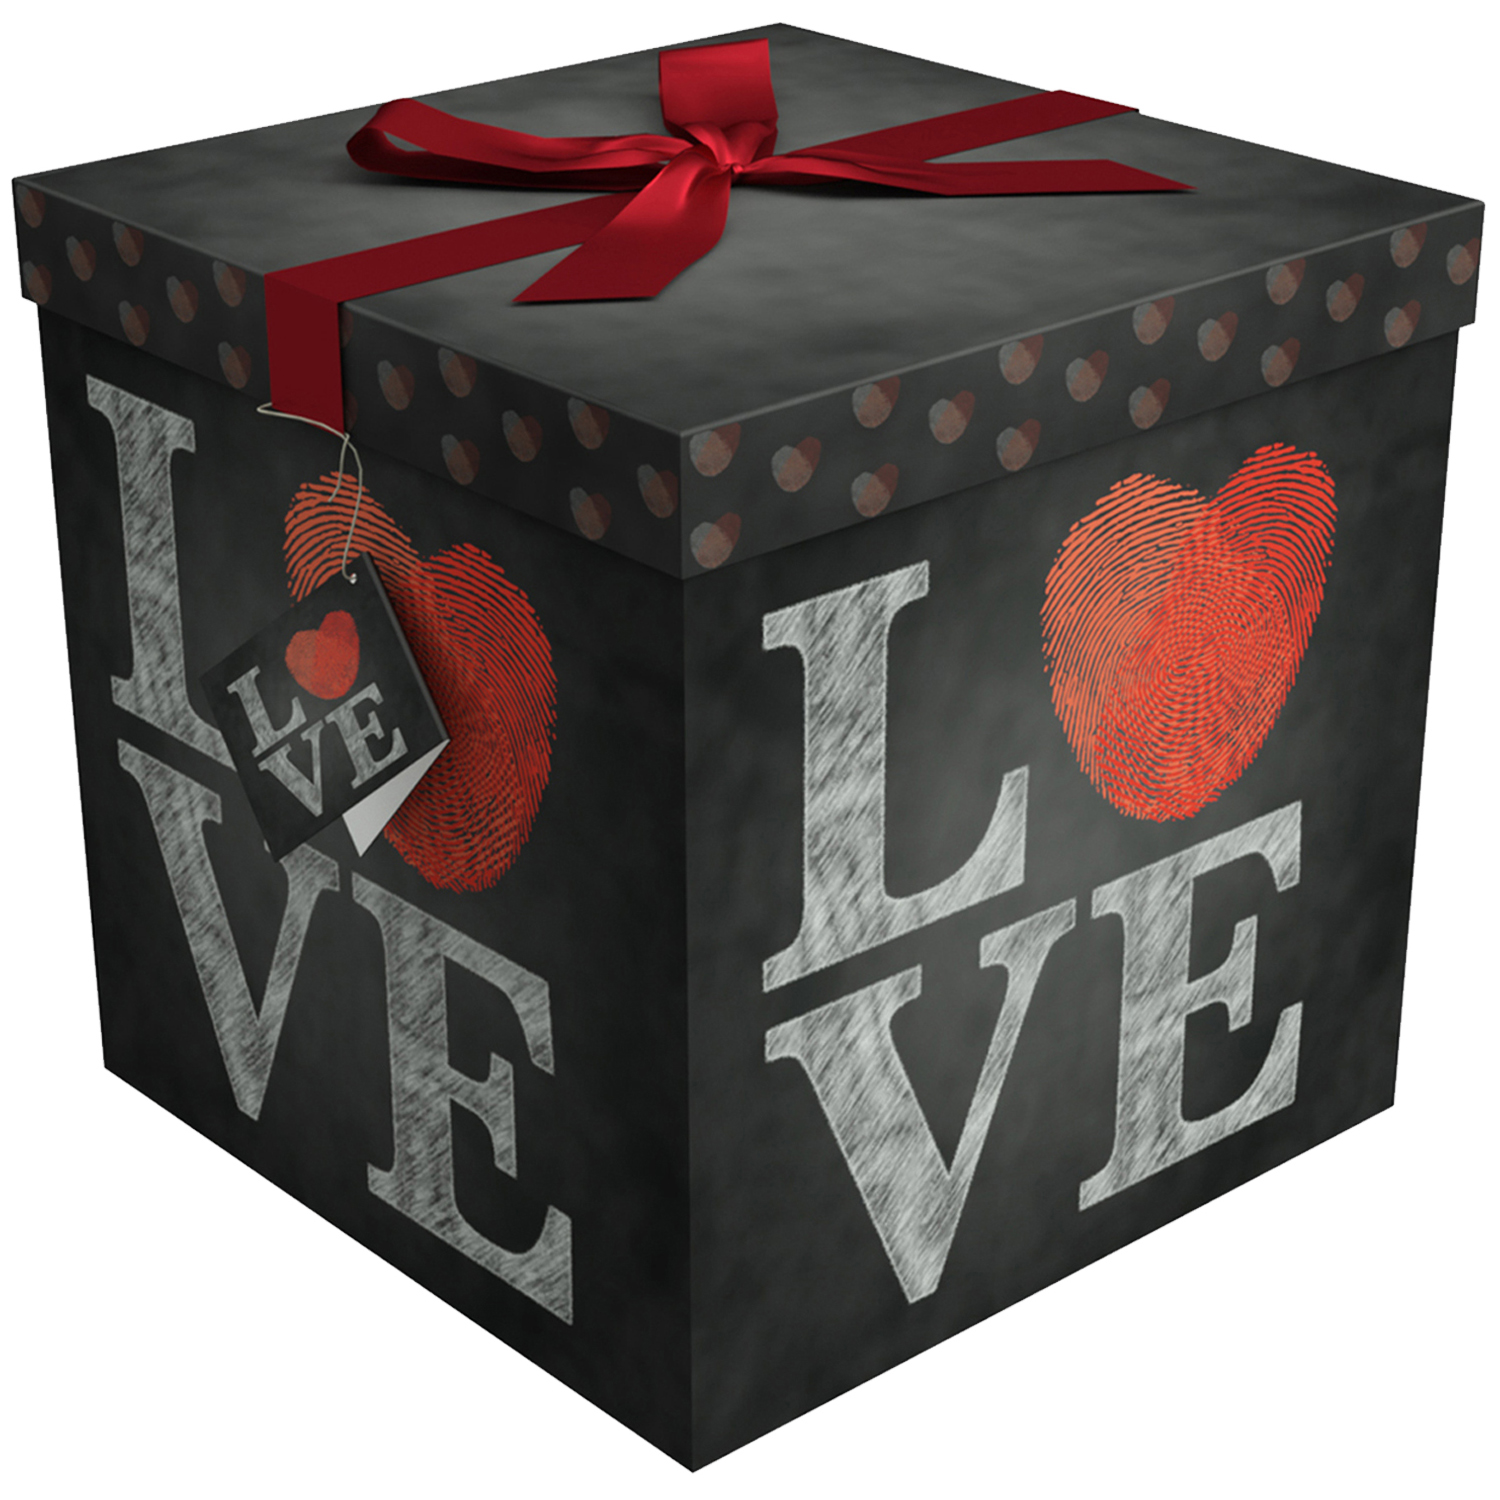 Gift Box 12x12x12 Amrita Love Collection - Easy to Assemble & Reusable - No Glue Required - Ribbon, Tissue Paper, and Gift Tag Included - EZ Gift Box by Endless Art US